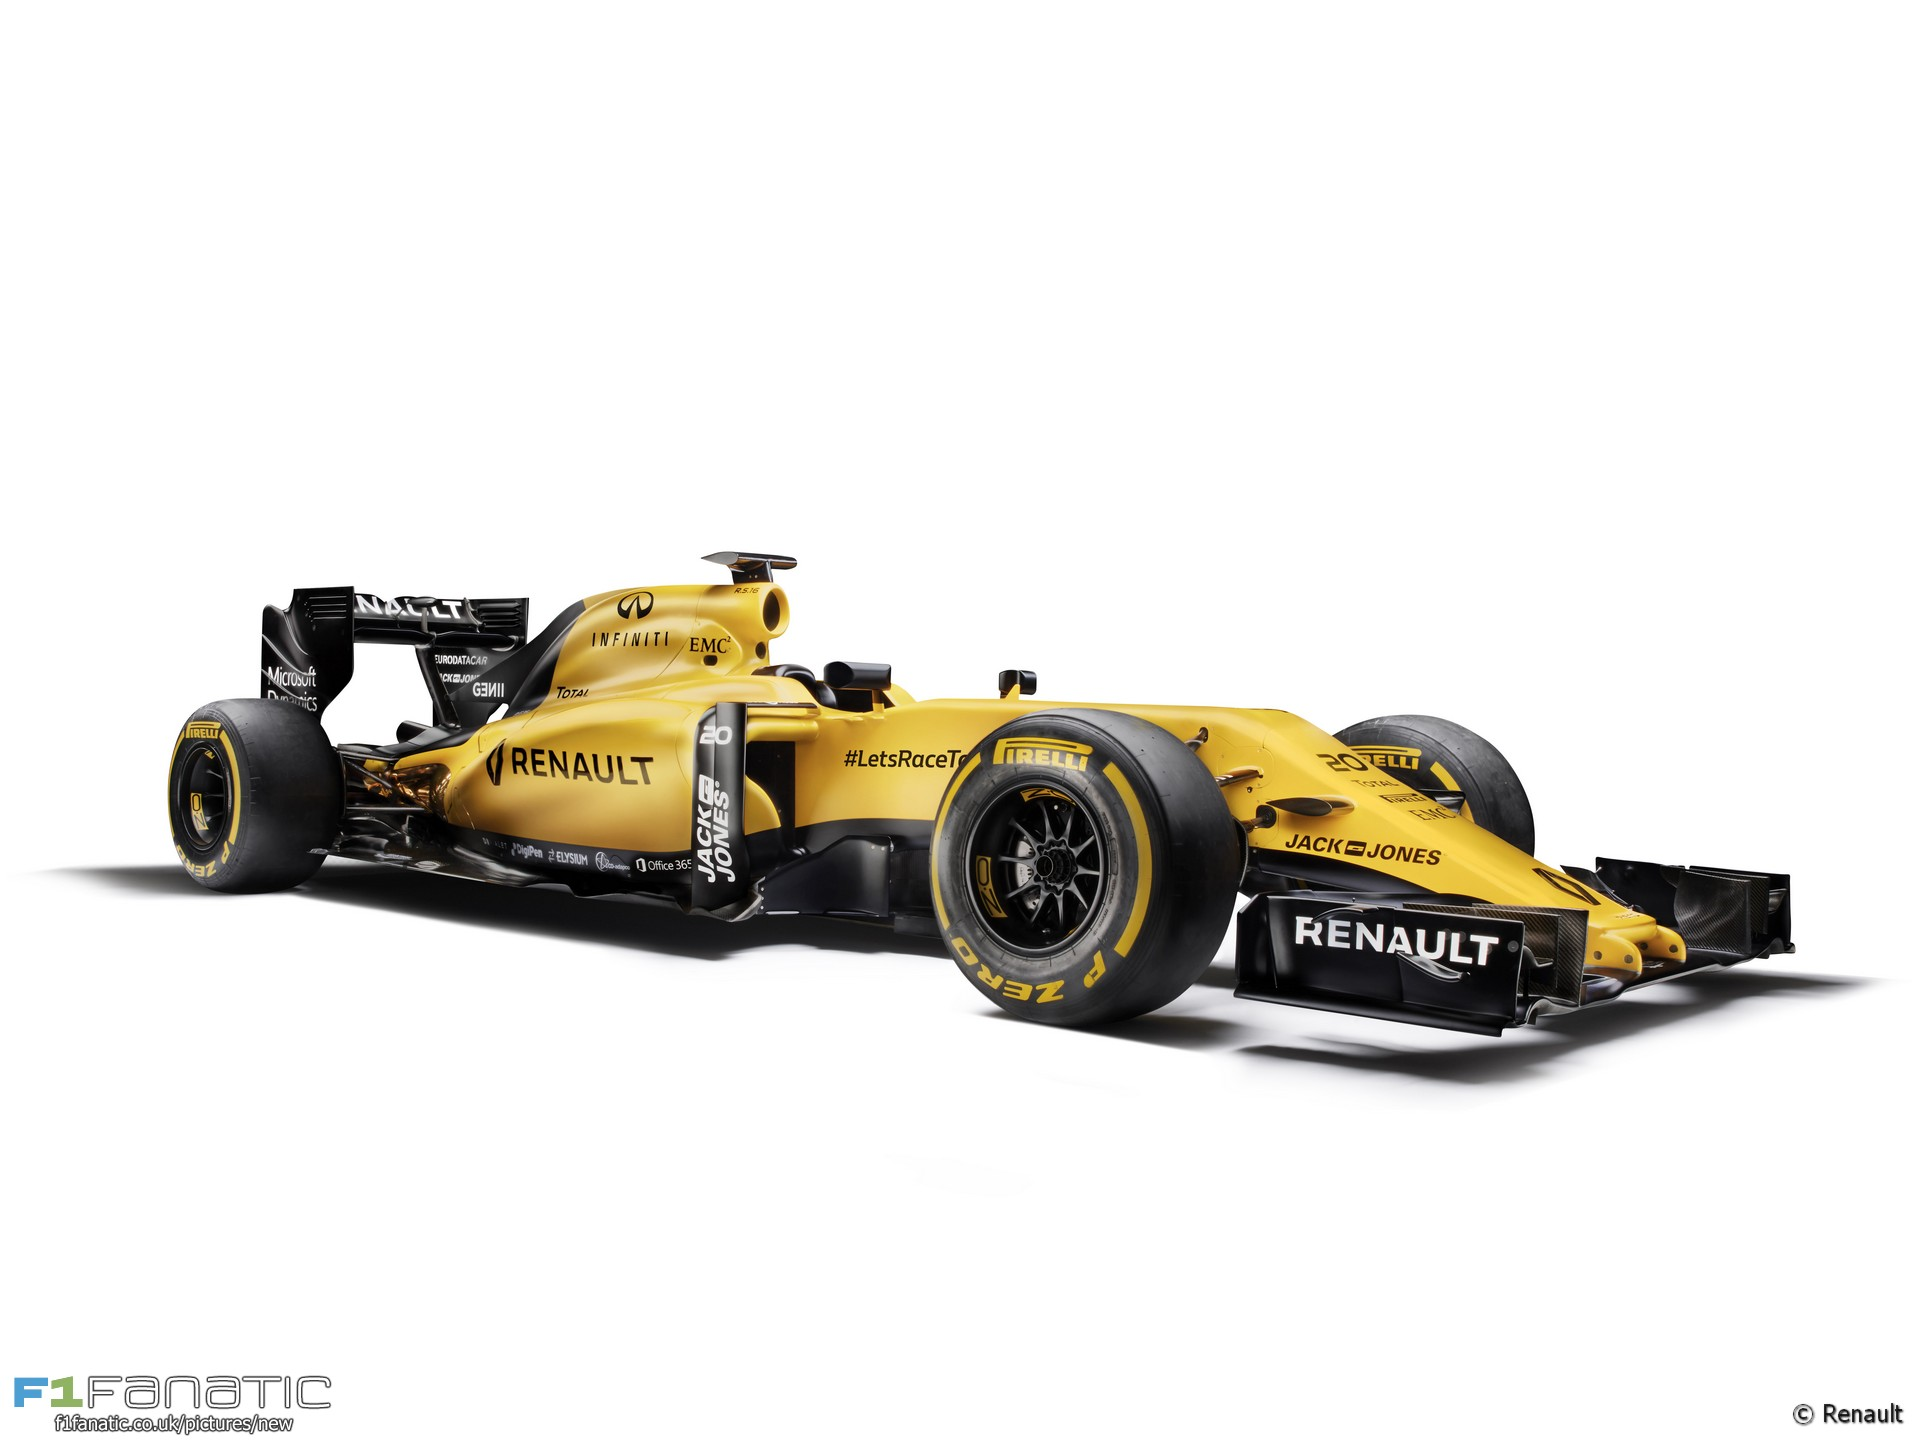 Renault RS16 livery, 2016